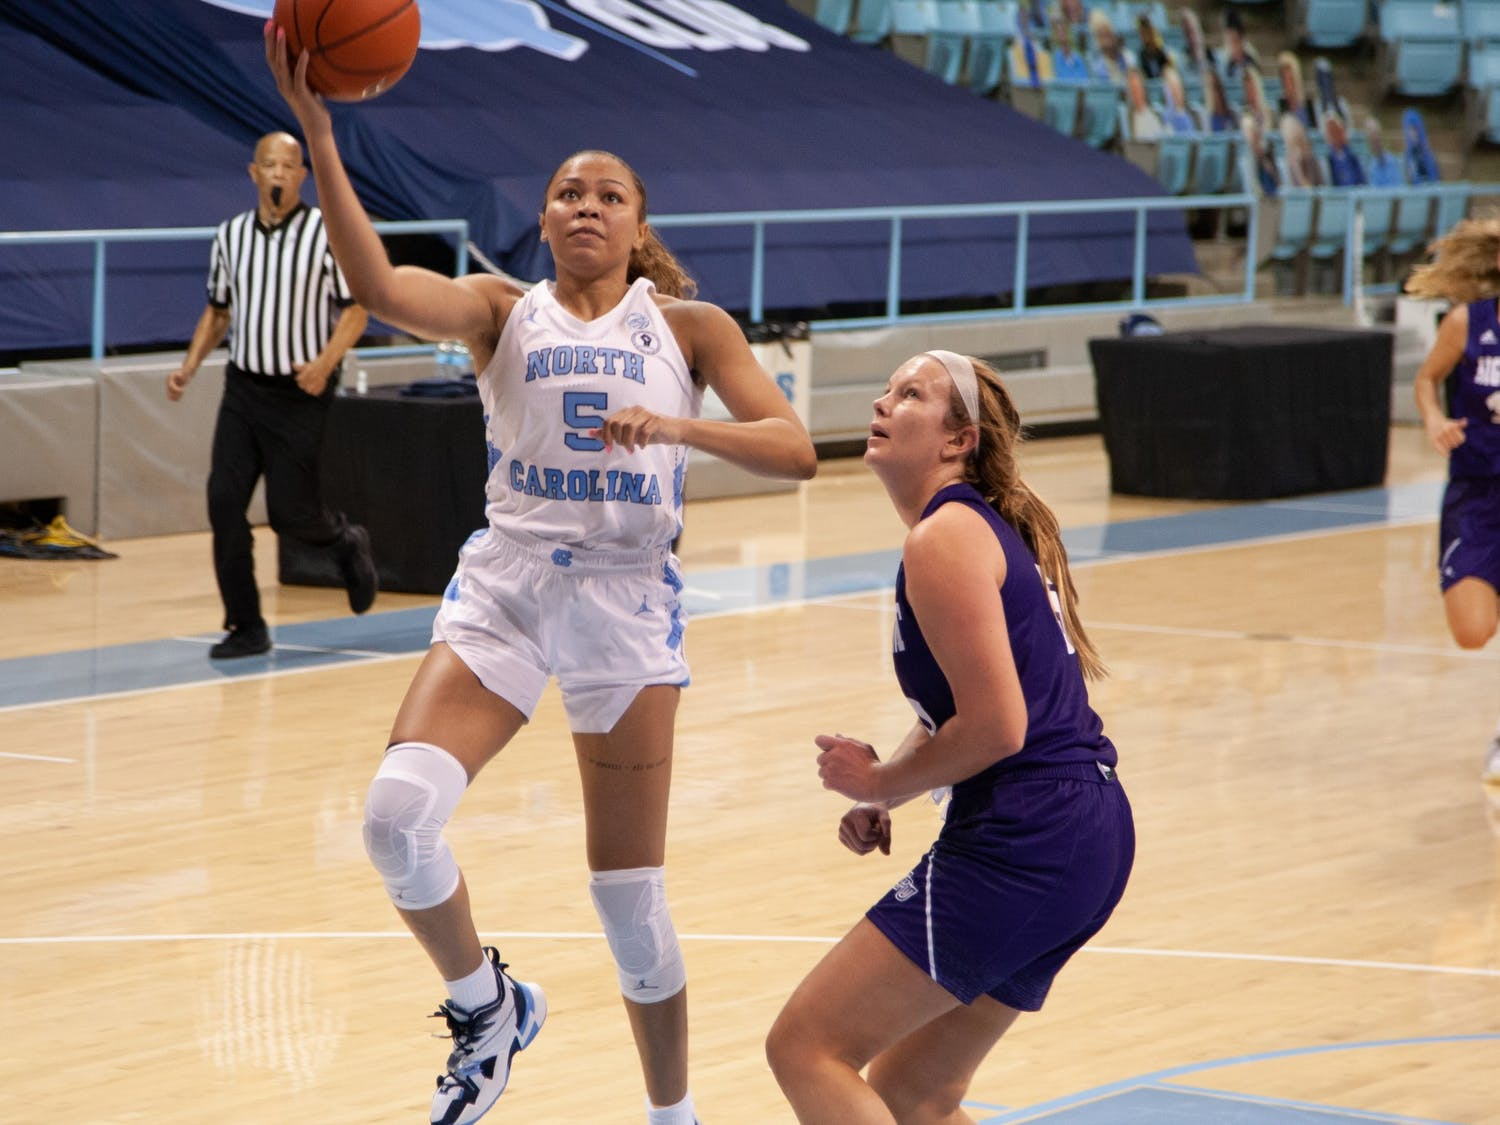 UNC graduate student guard Stephanie Watts (5) goes for a layup during game against High Point on Sunday, Nov. 29, 2020 in Carmichael Arena.